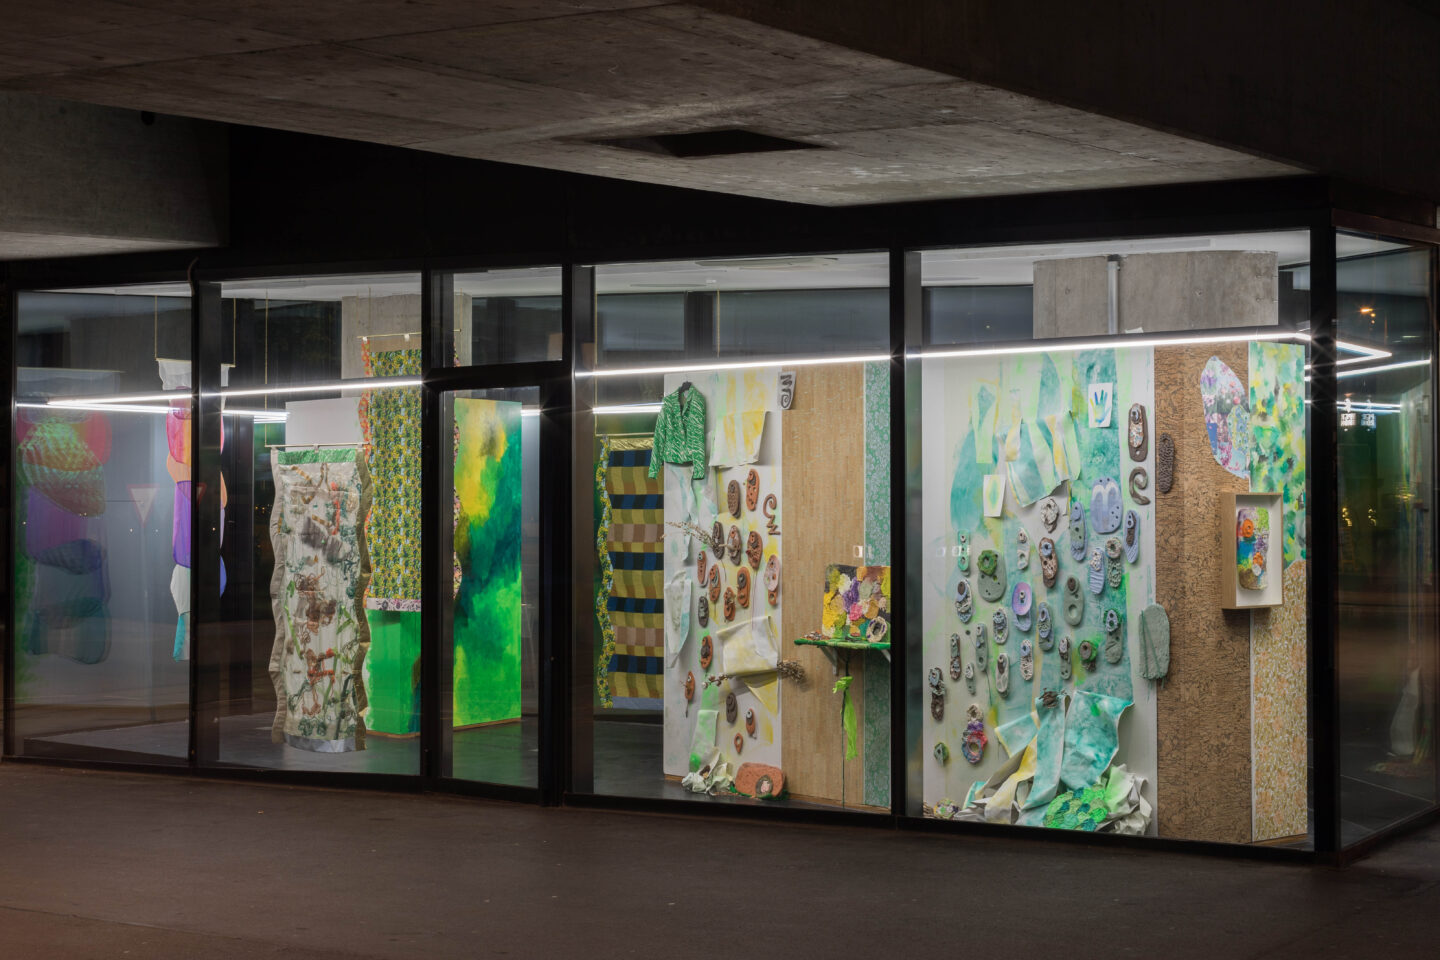 Exhibition View Ludovica Gioscia Soloshow «The Tenderness of Insects» at VITRINE, Basel, 2019 / Photo: Nicolas Gysin / Courtesy: the artist and VITRINE